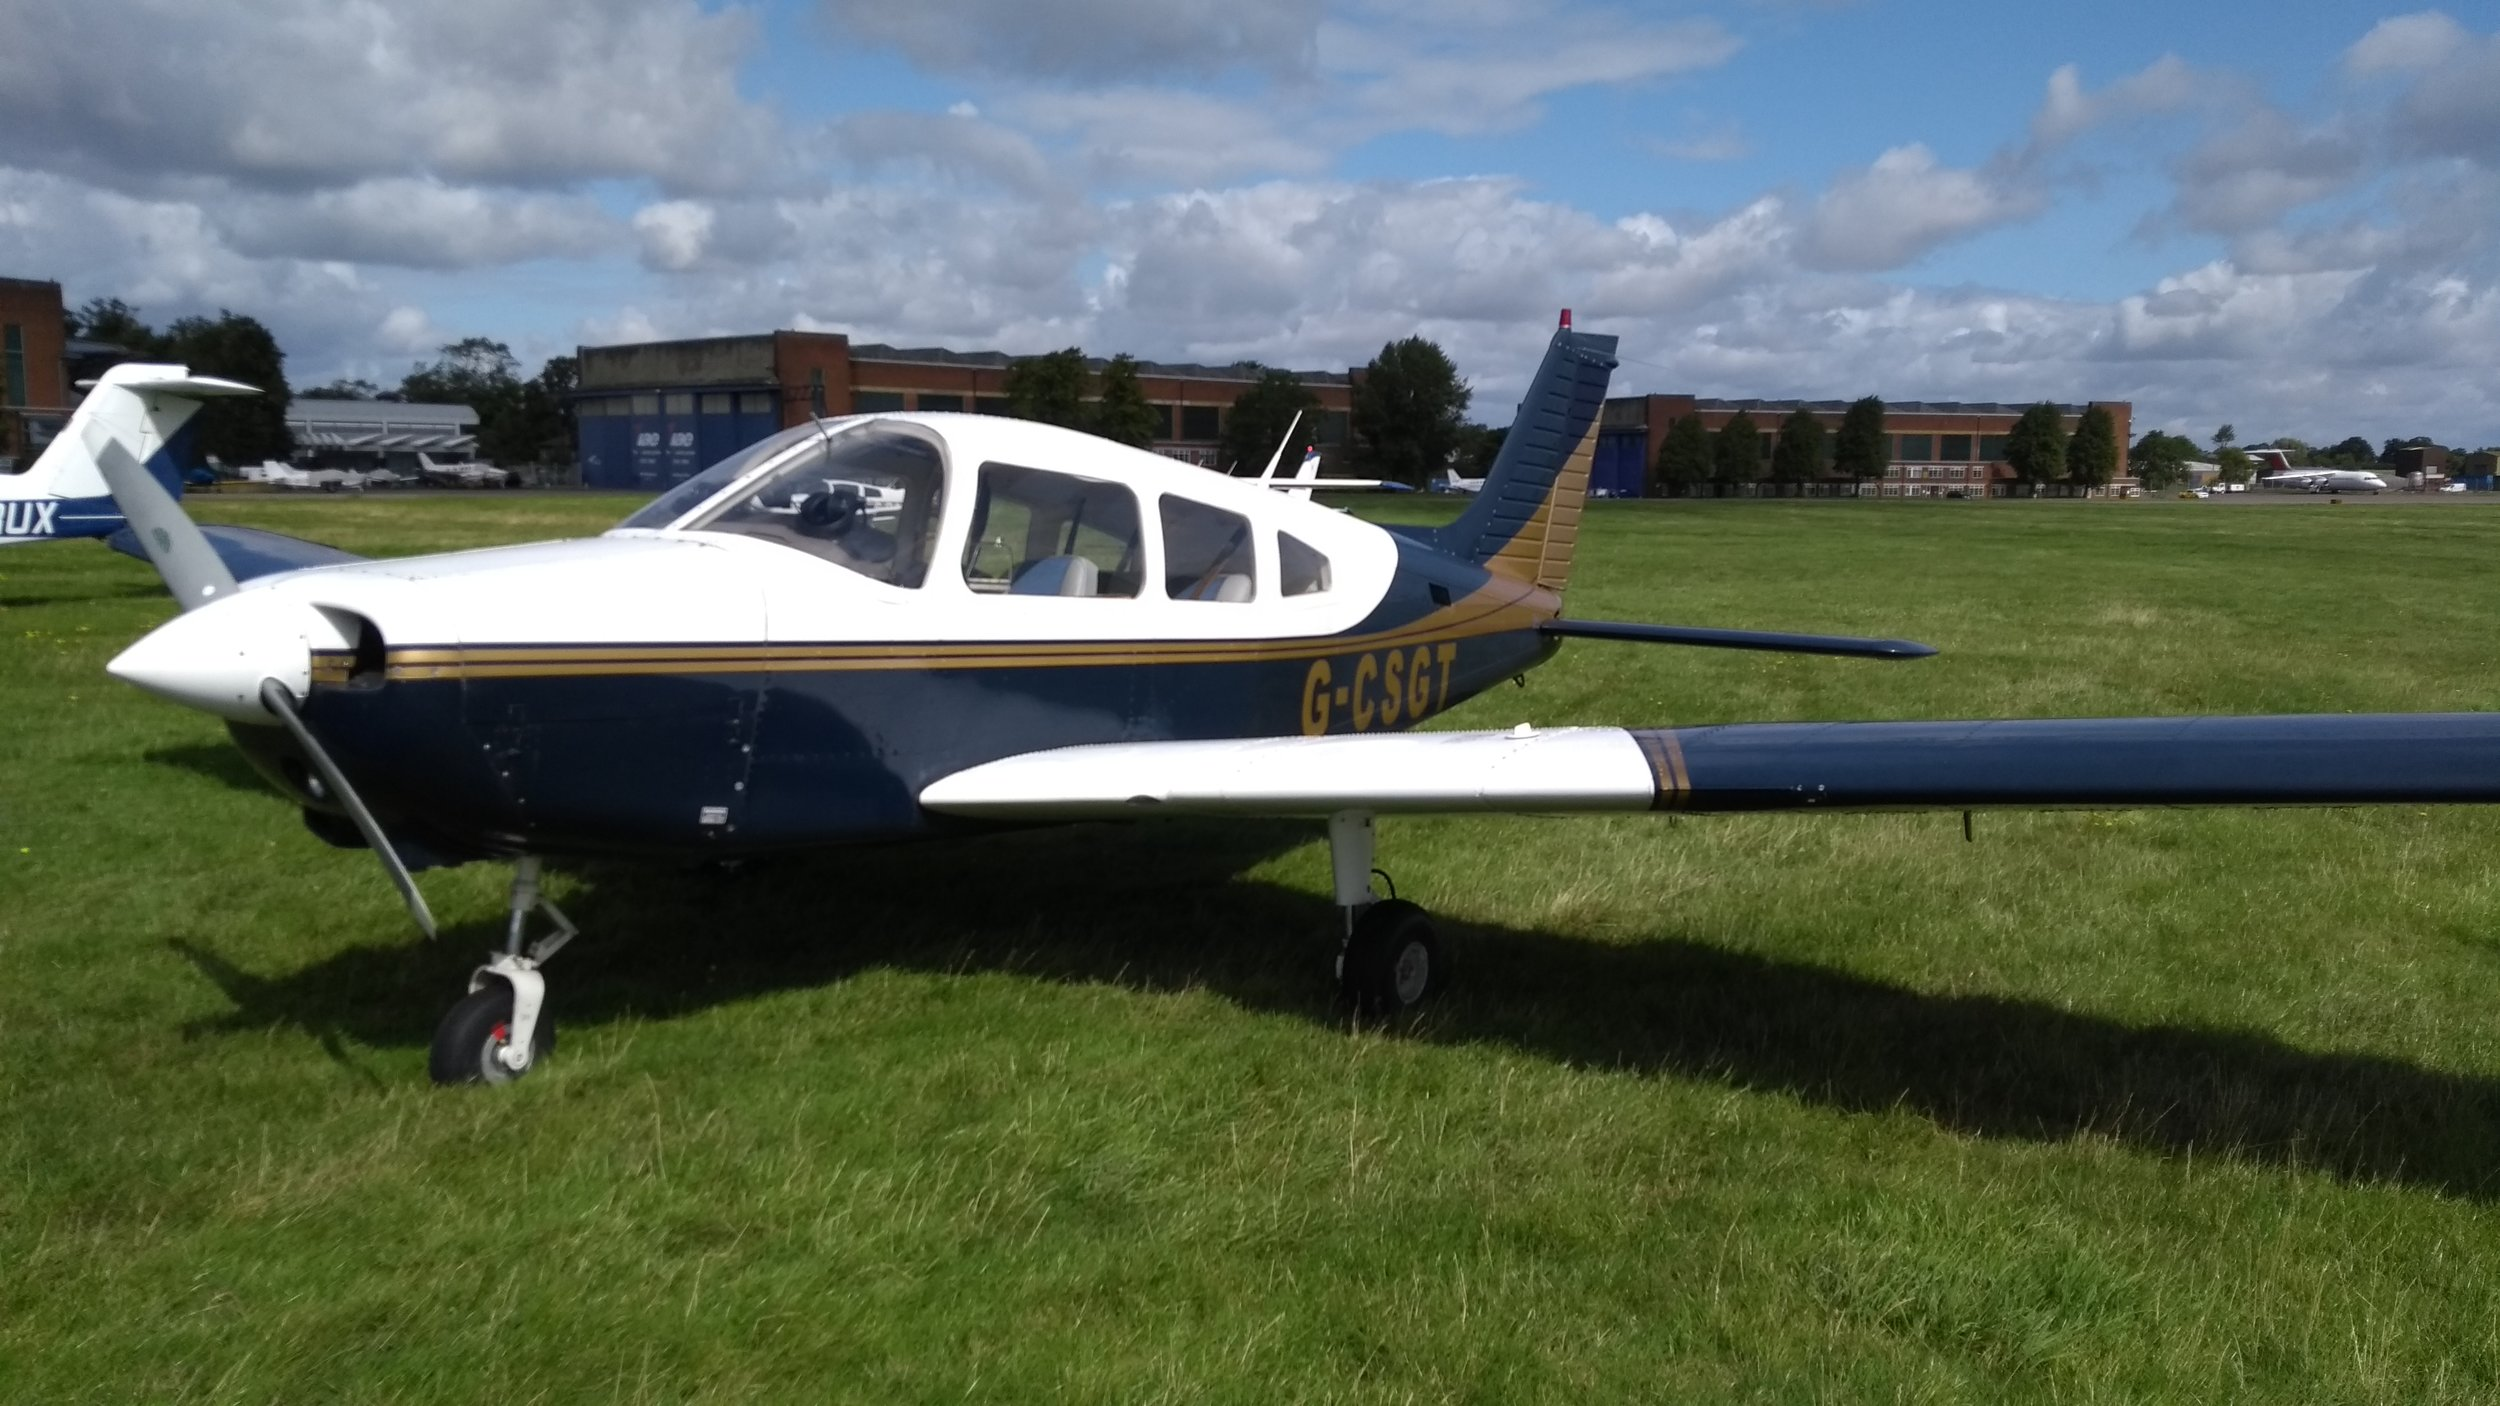 A Typical PA 28 Trainer for LAPL. It canc carry 4 people.